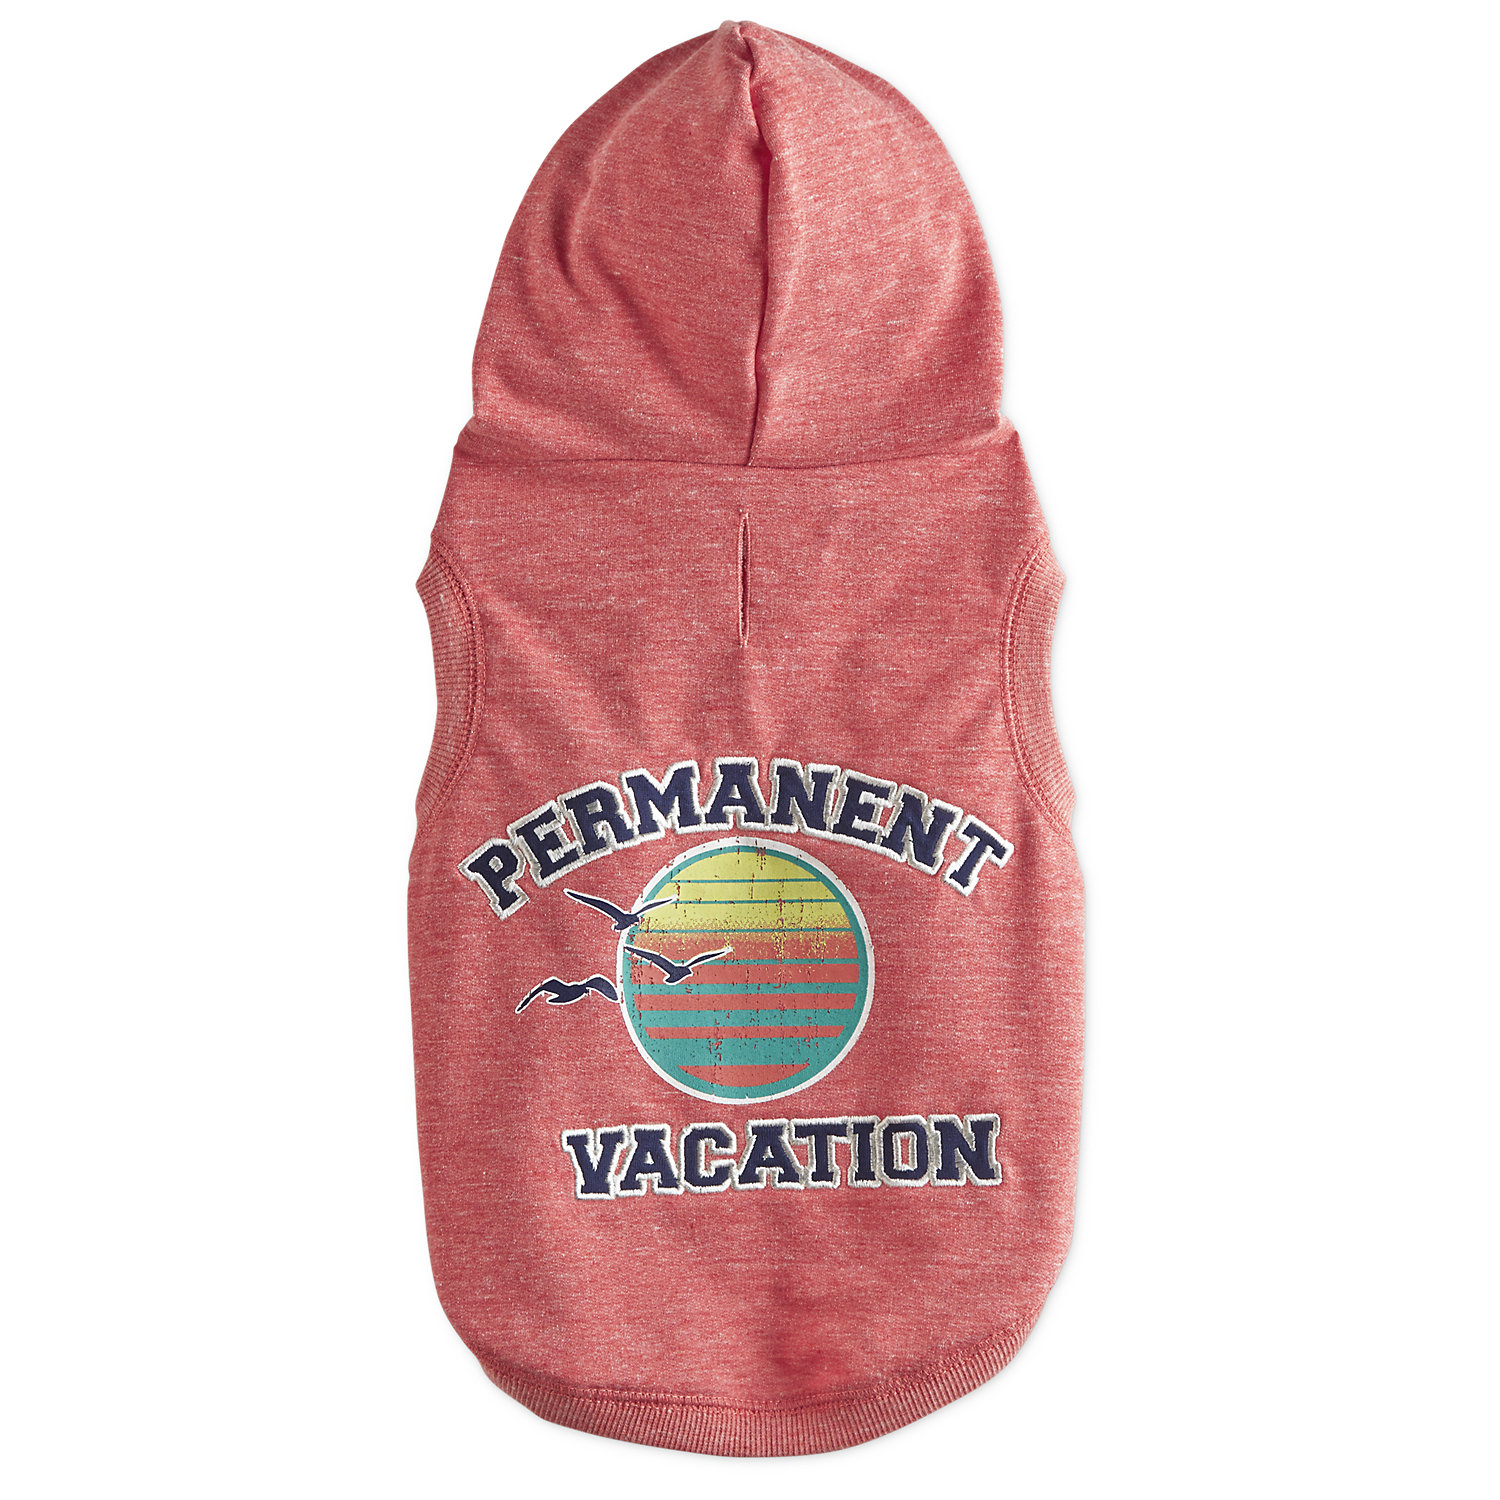 Bond & Co. Permanent Vacation Dog Hoodie, Small